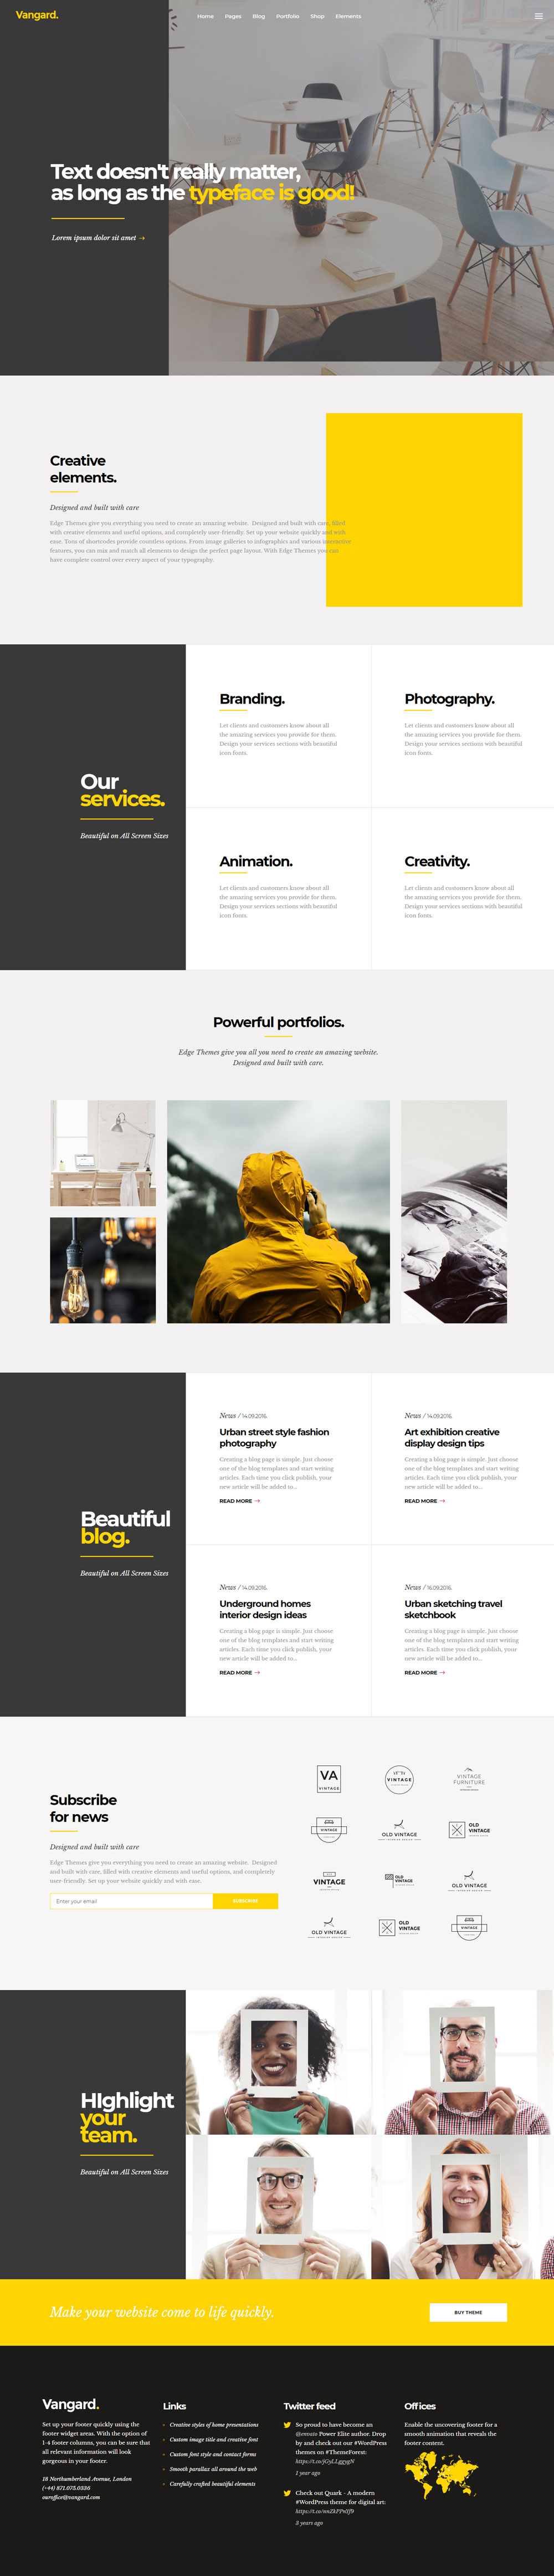 Vangard - WordPress Theme for Freelancers and Agencies